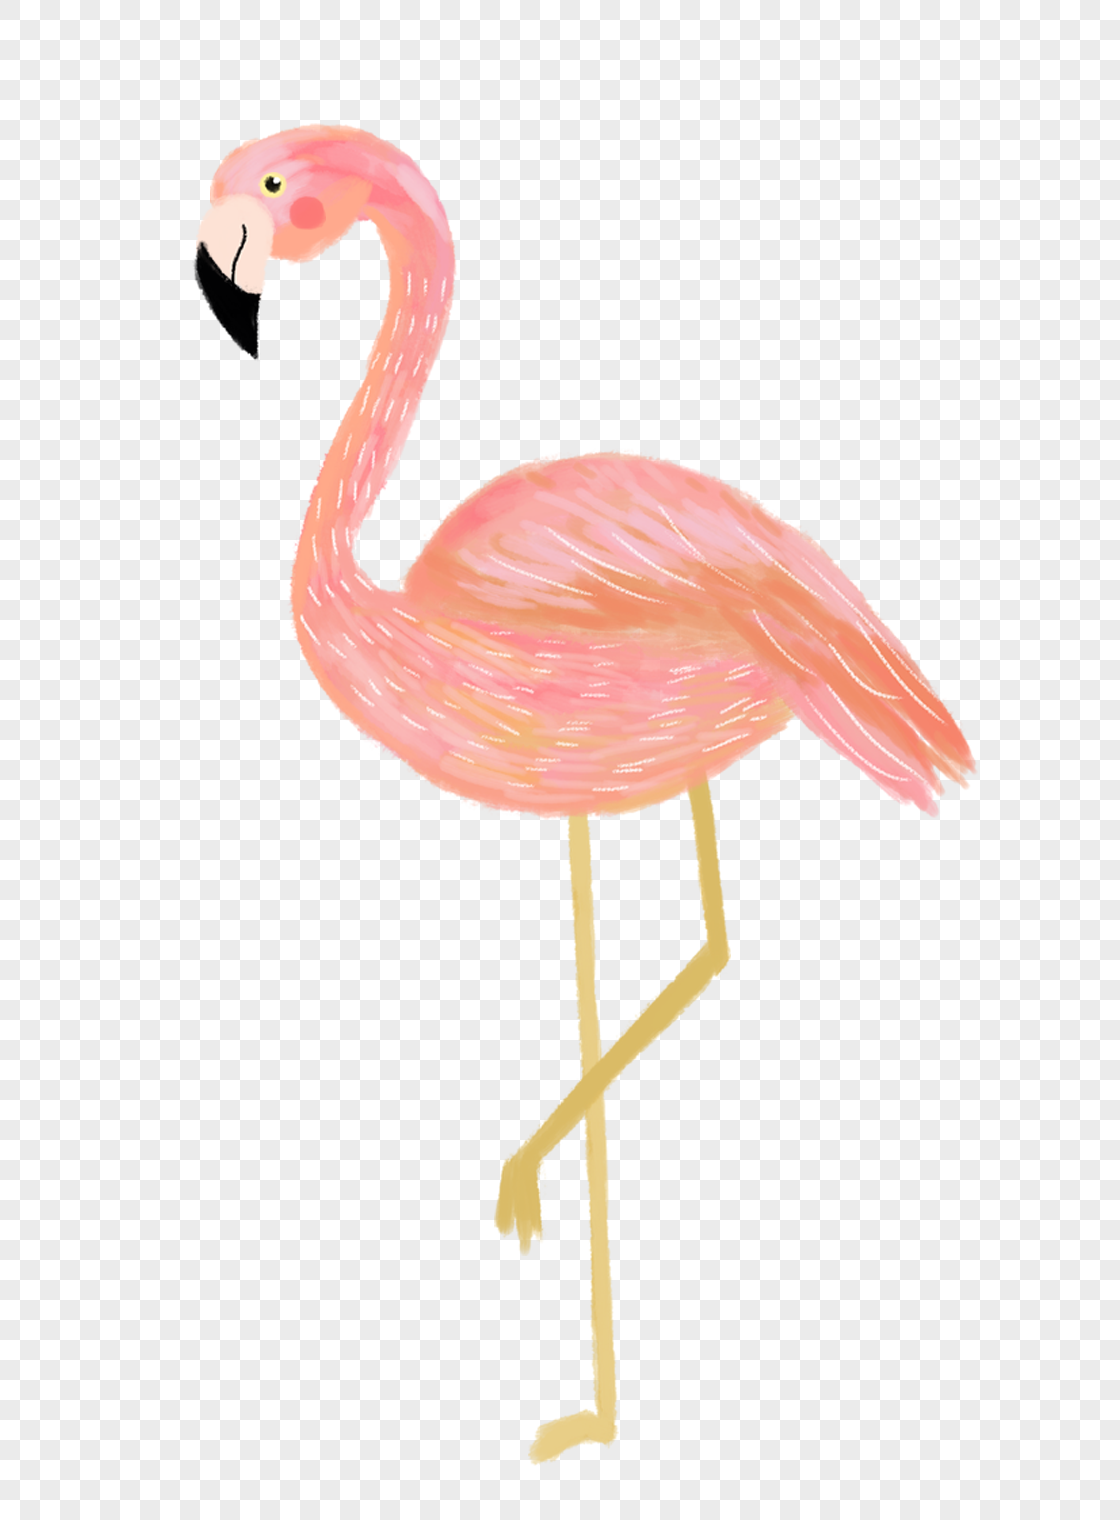 Flamingo Transparent Background Images